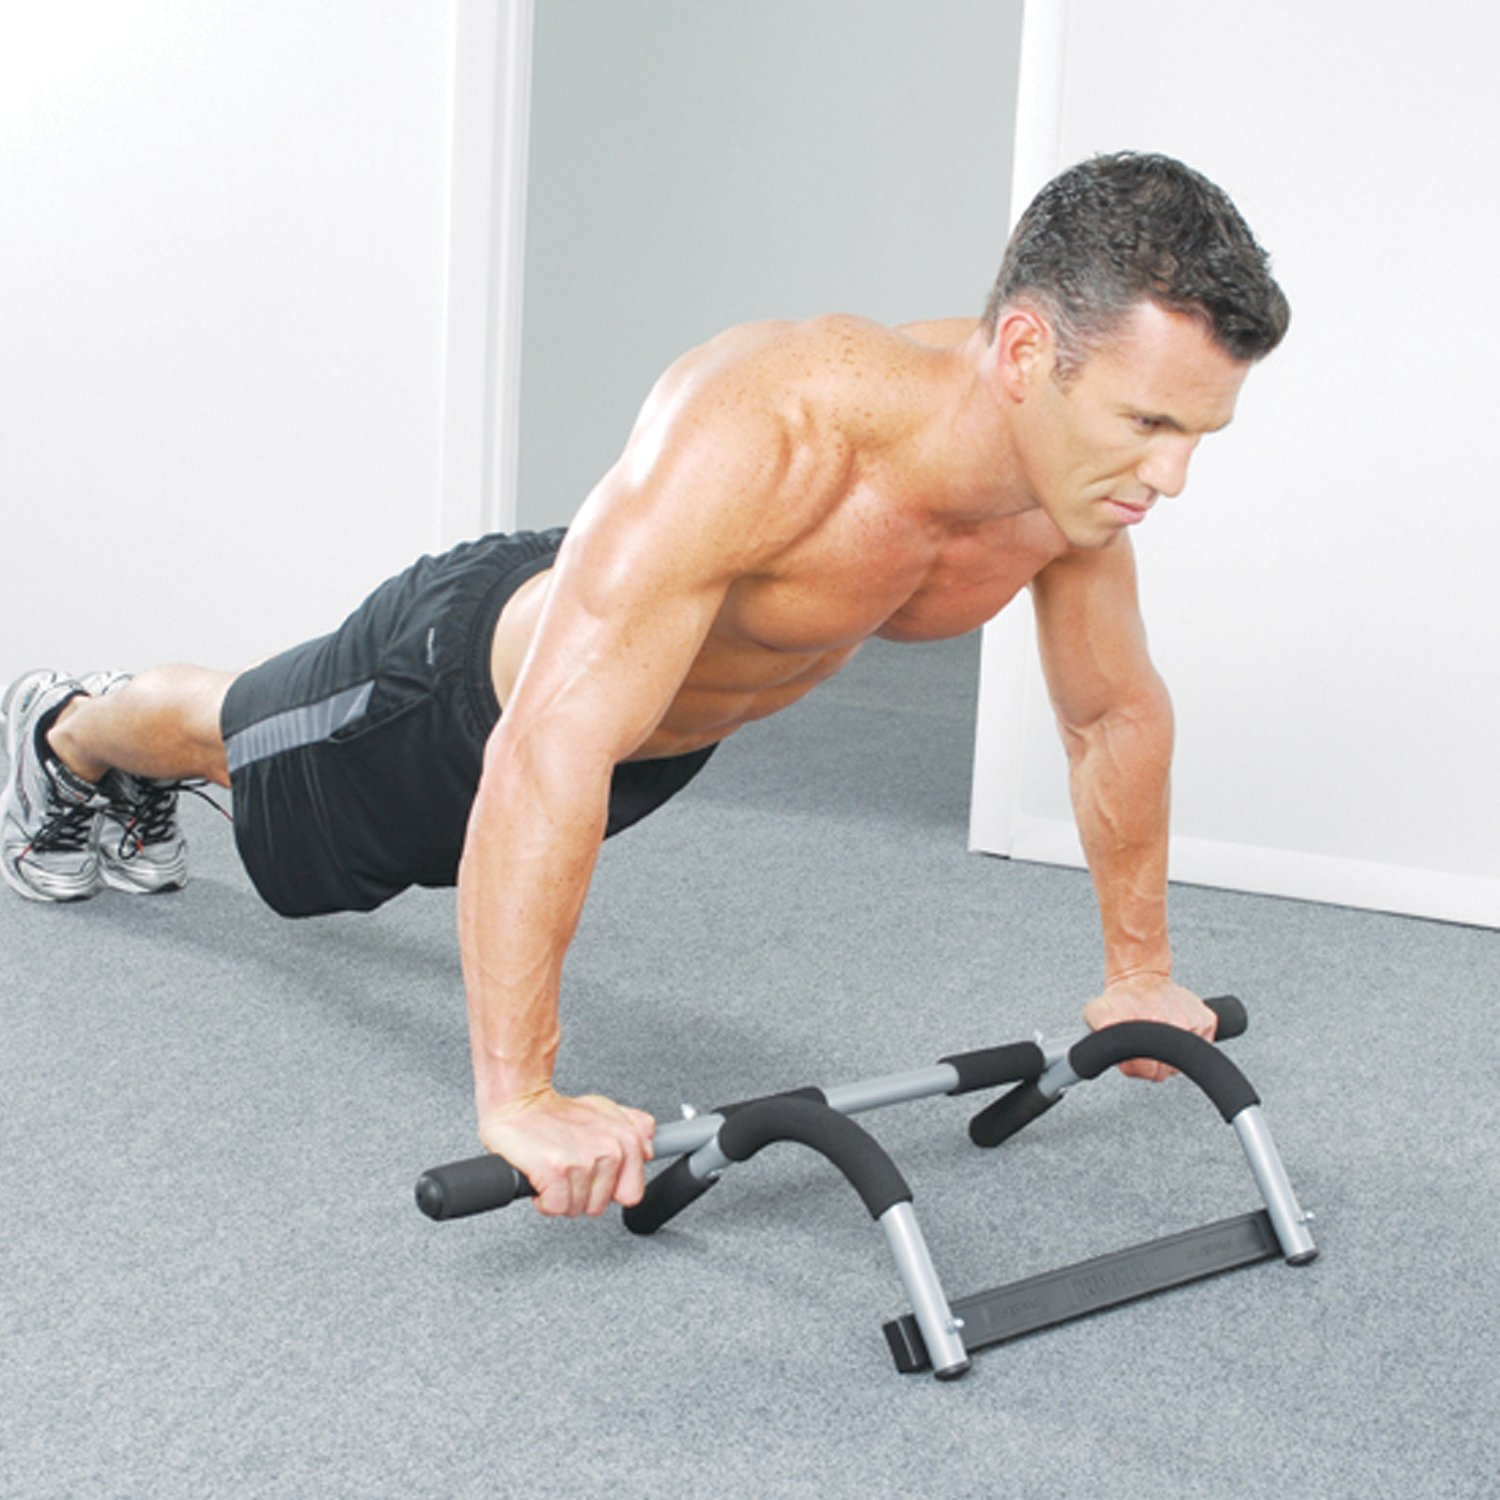 Image result for man working out at home upper body part